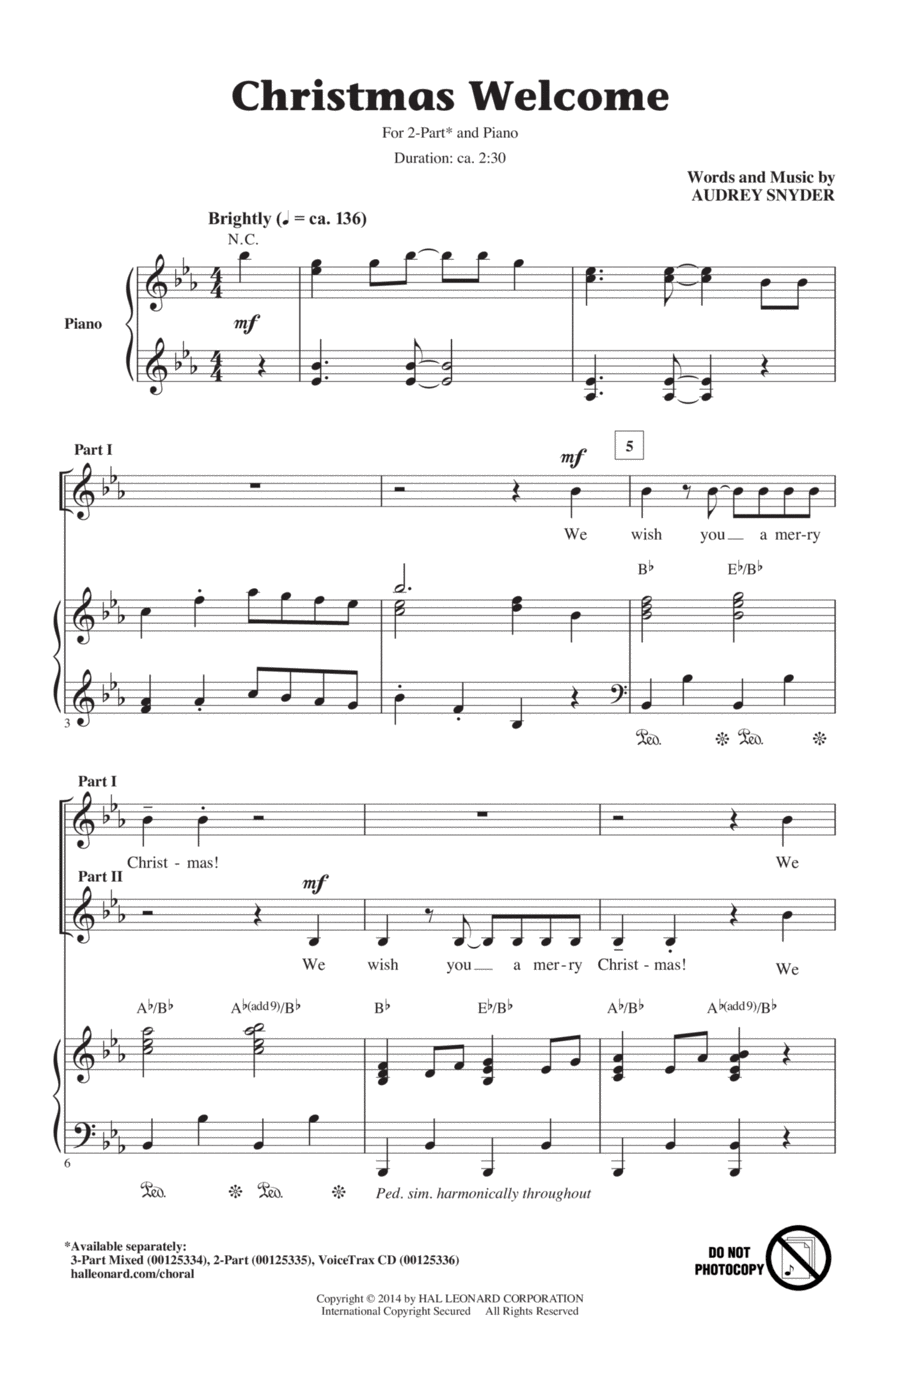 Christmas welcome sheet music by audrey snyder sheet music plus